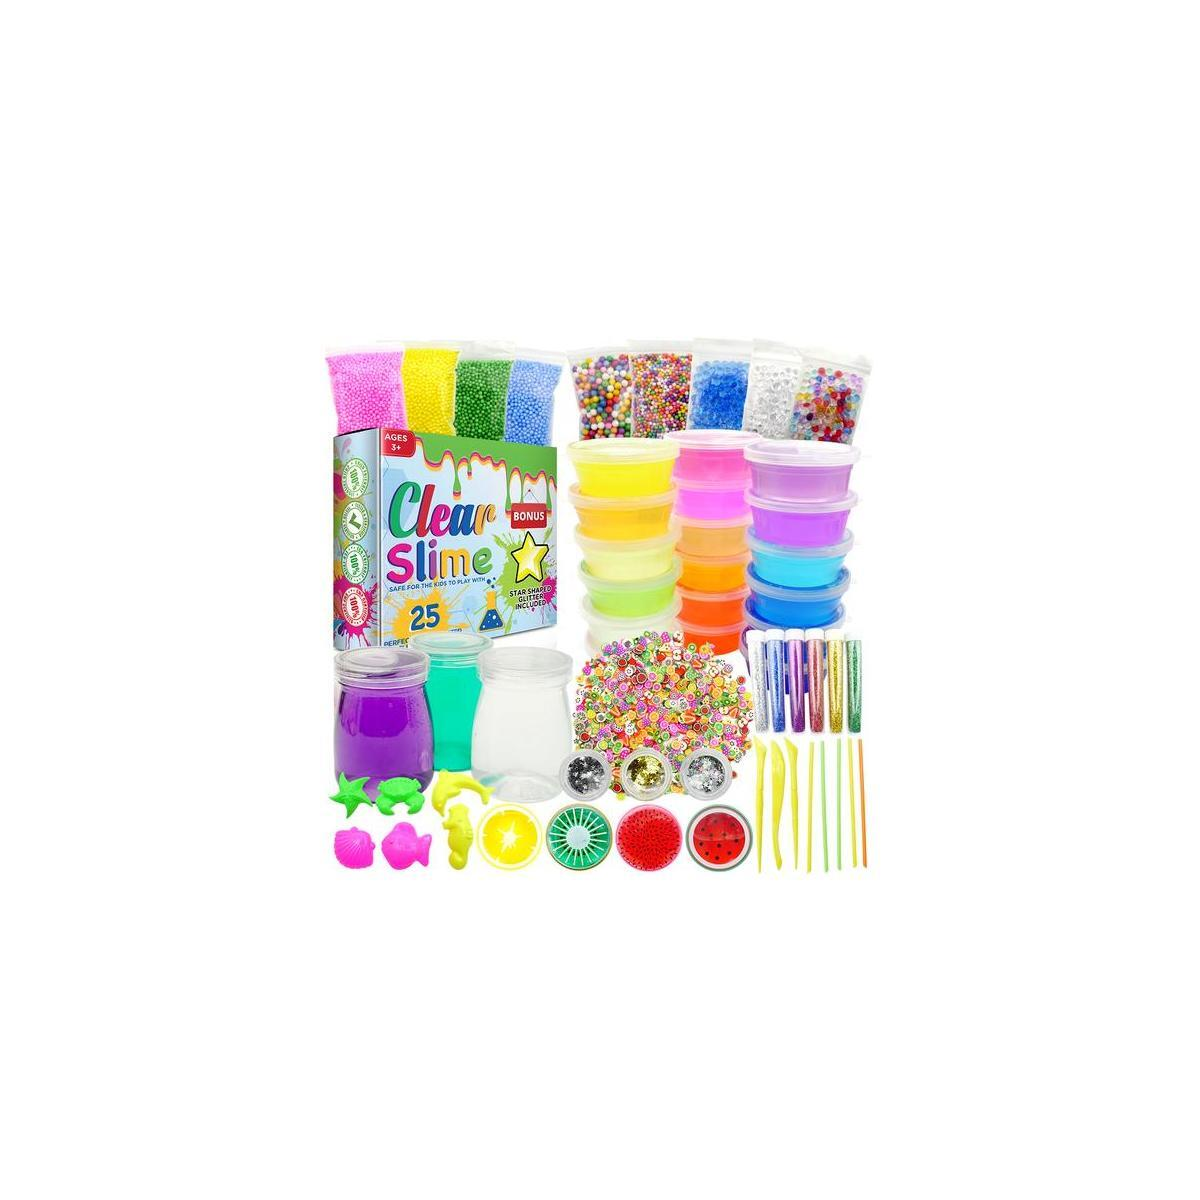 Clear Slime 58pc Kit for DIY Crystal Slime | 25 Colors Slime, 6 Pack Foam Beads, 4 Fruit and 3 Jars | Complete Supplies and Glitter Accessories for Boys and Girls